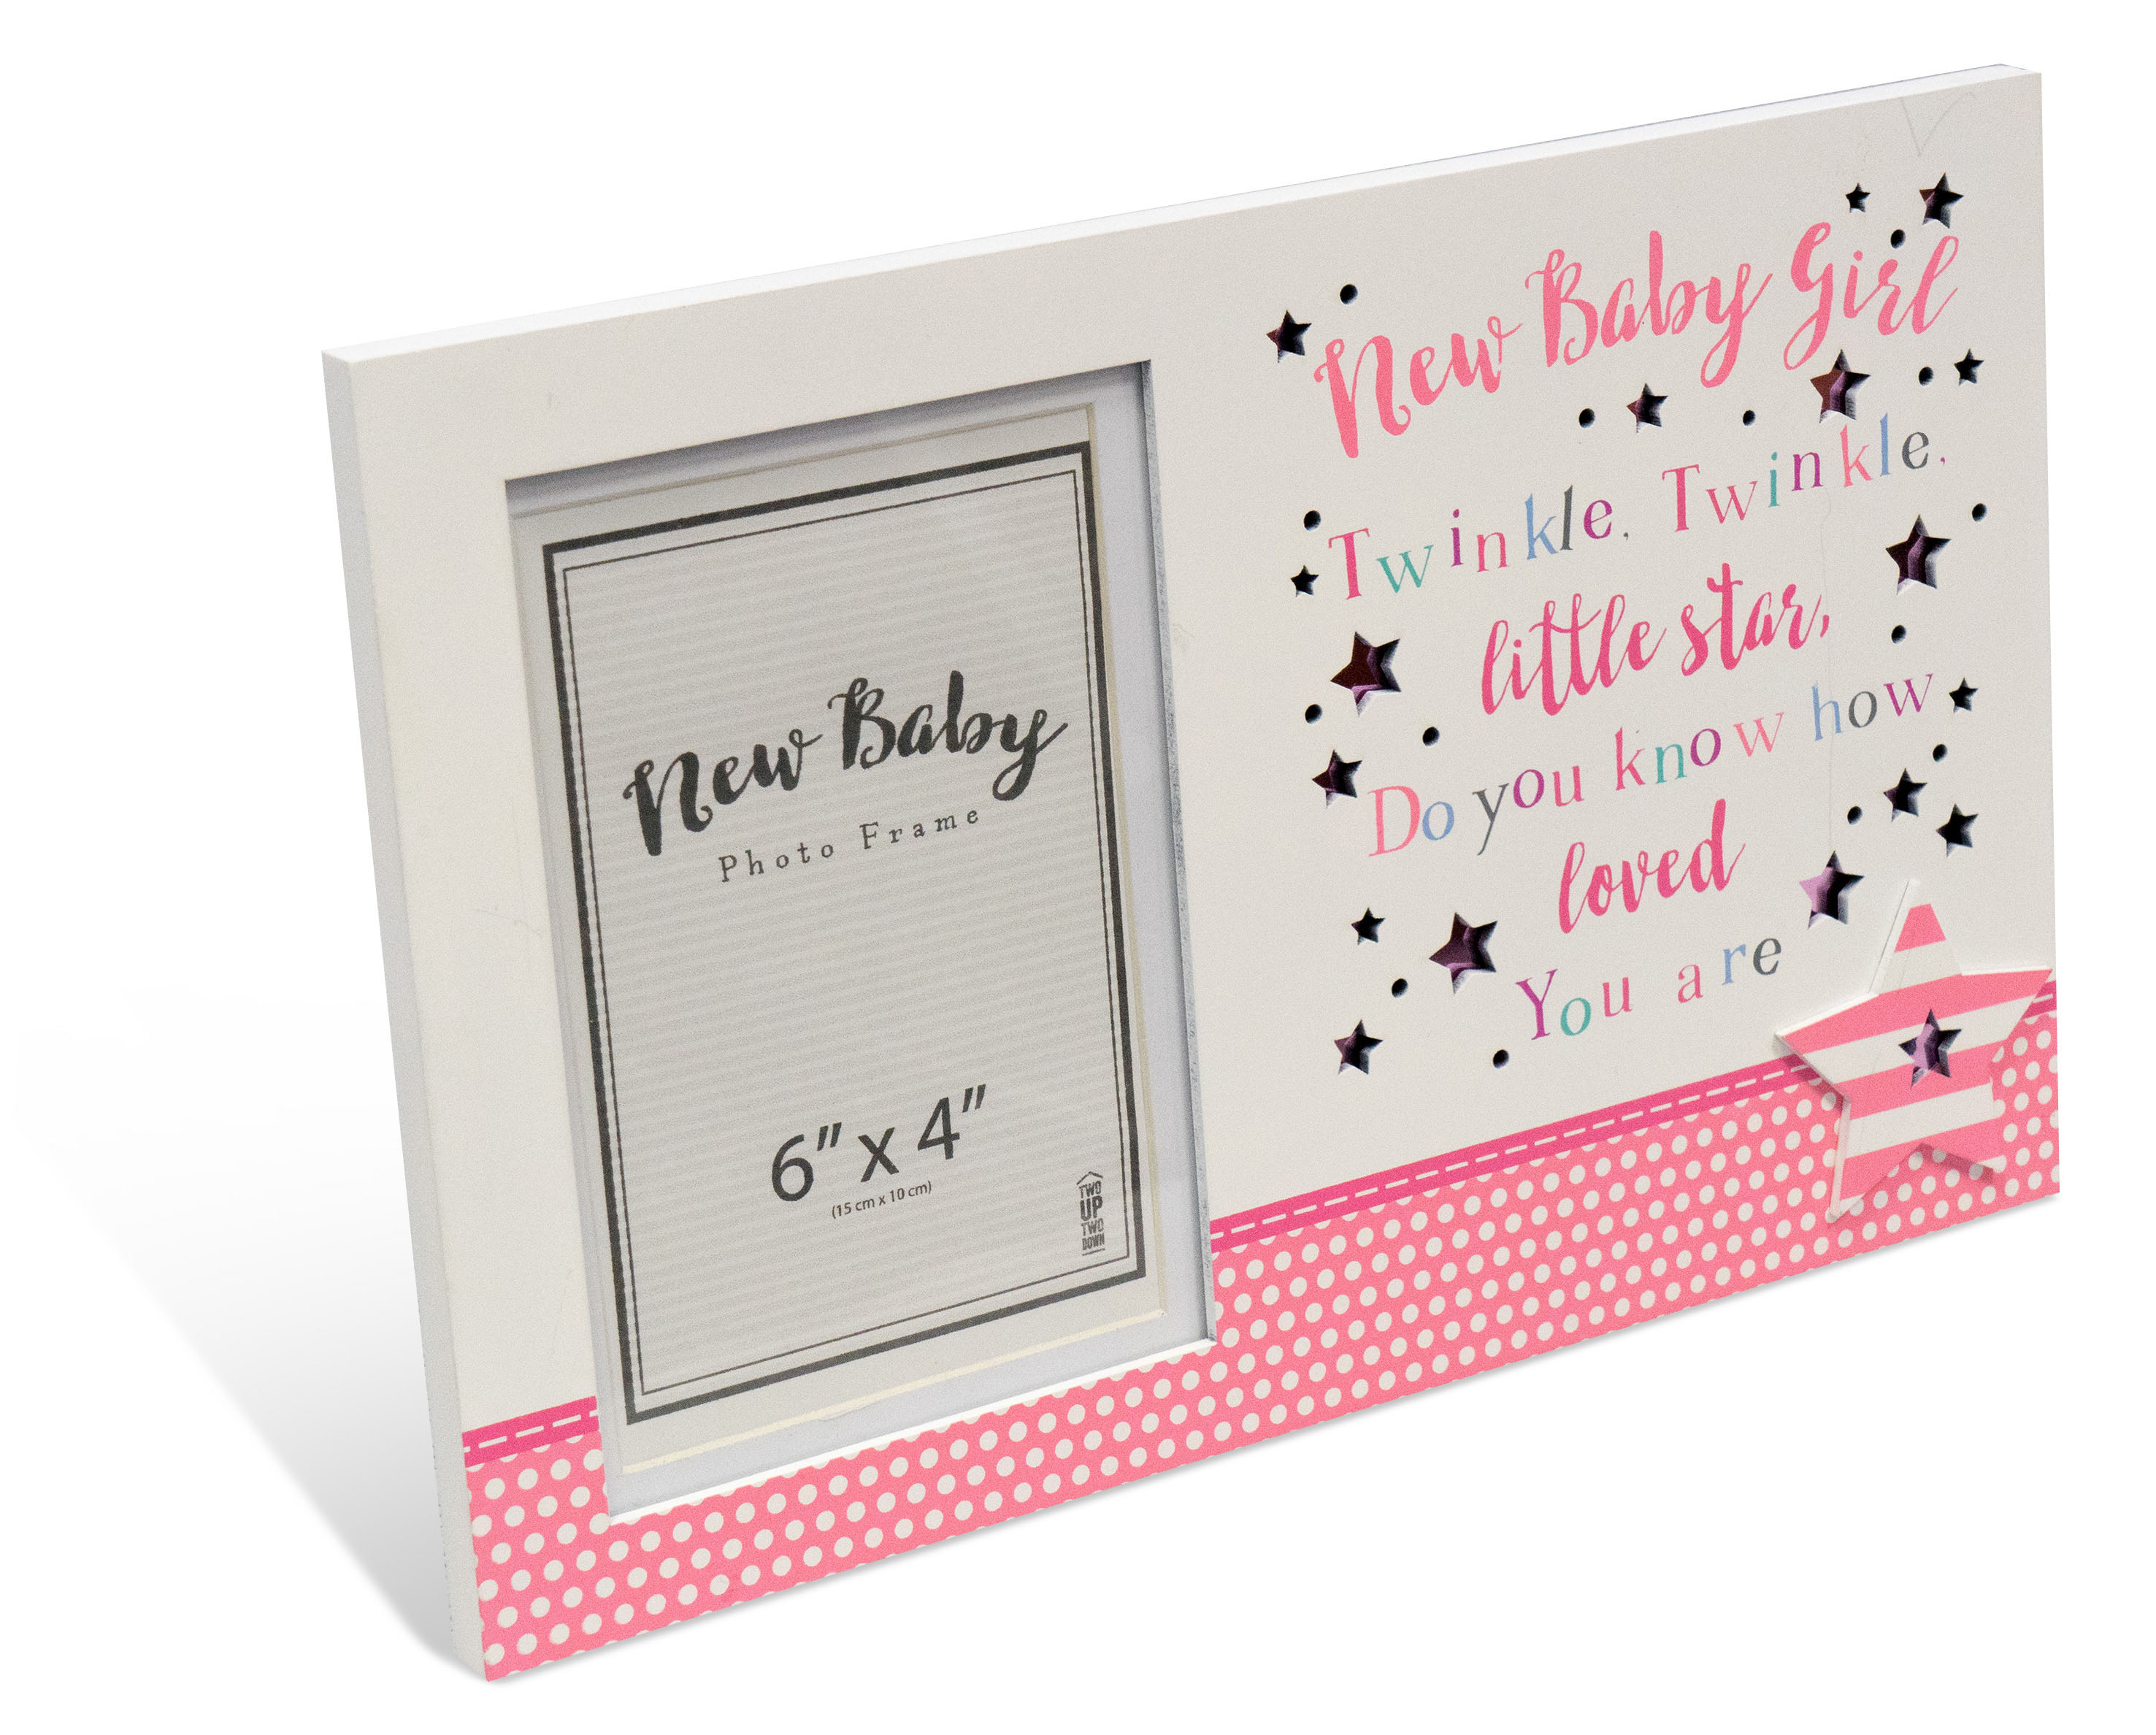 New Baby Girl 6 X 4 Photo Frame Message Plaque Gift Gifts